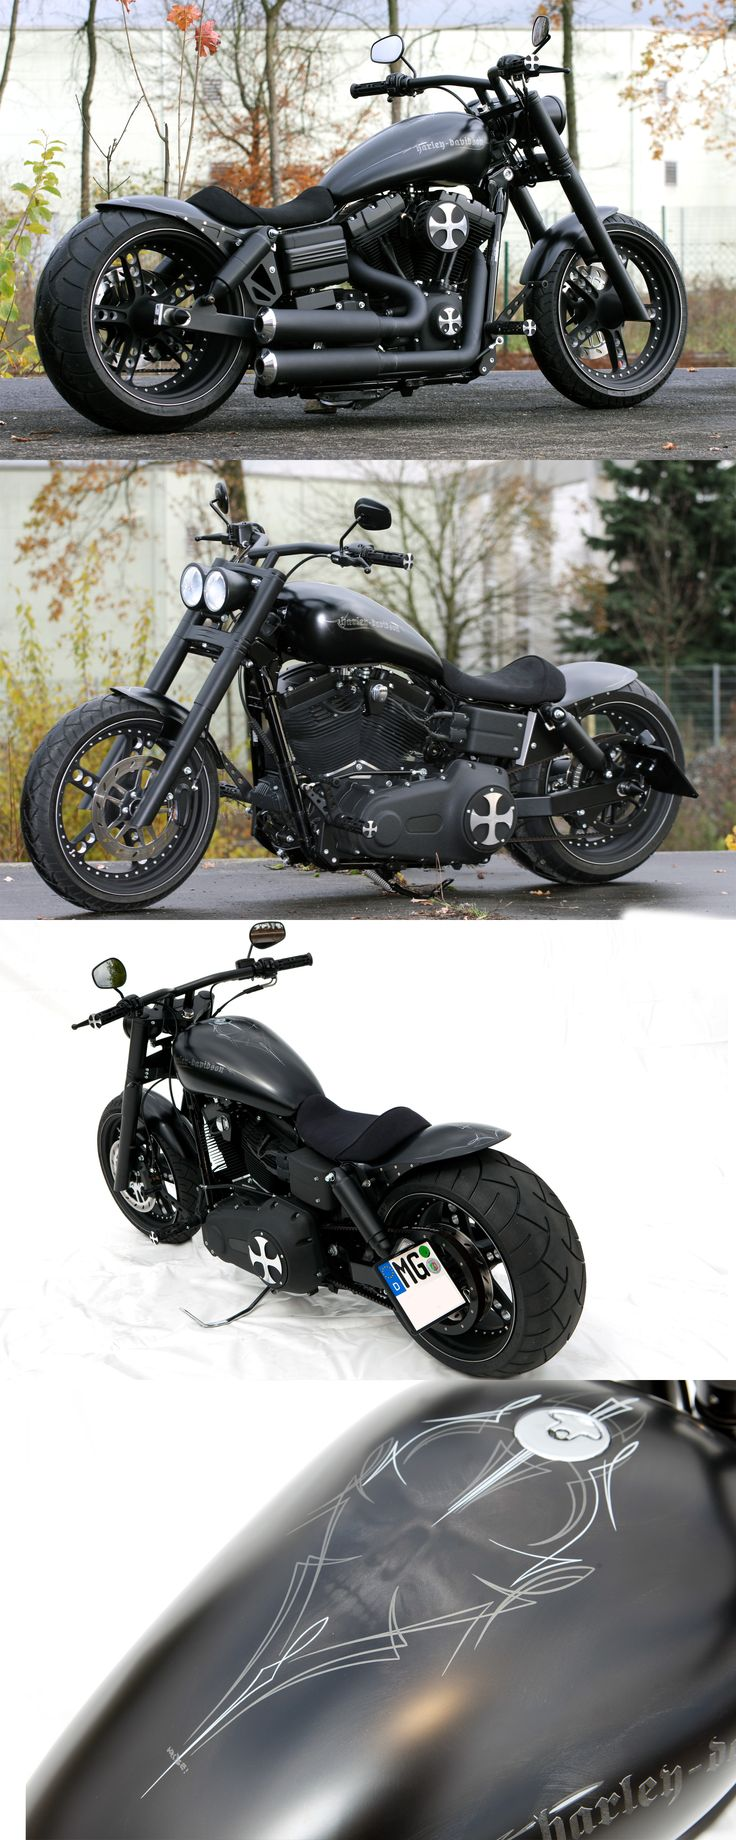 Thunderbike Dark Bob (customized Harley-Davidson Street Bob FXDB)